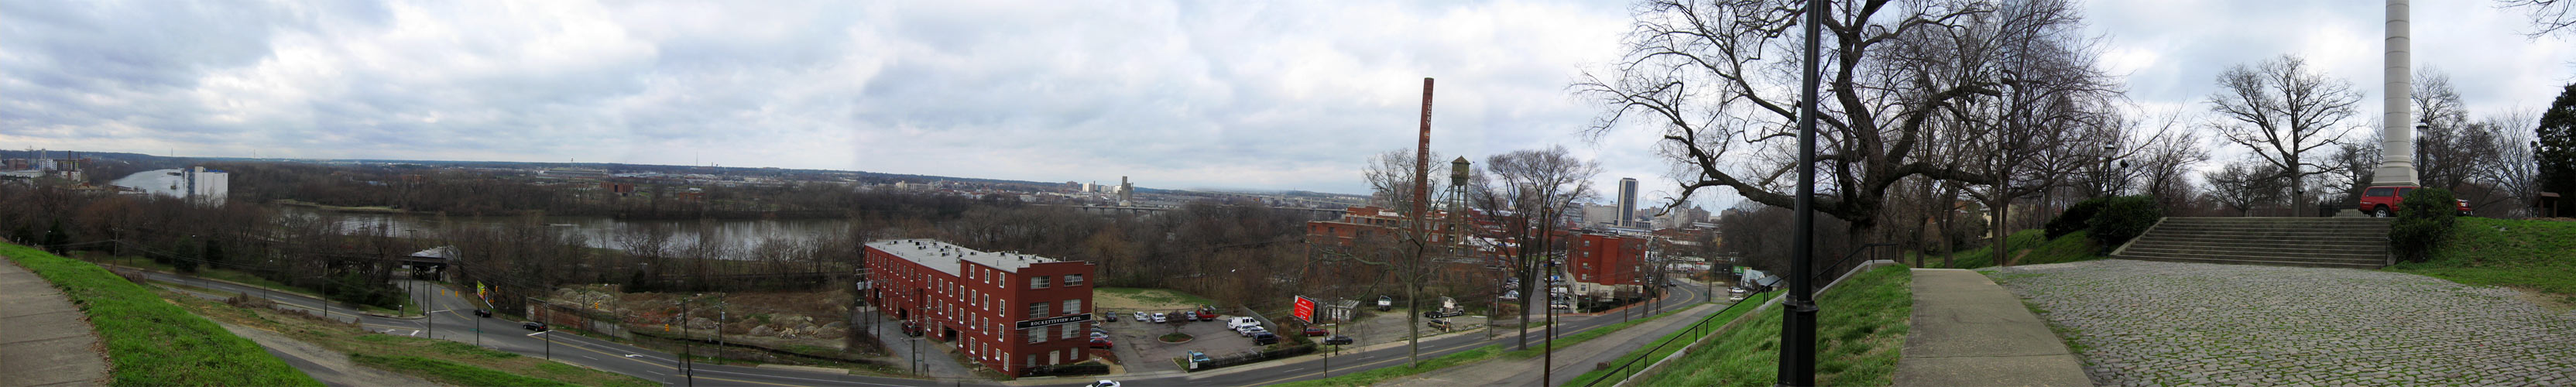 Panorama - Richmond, Virginia